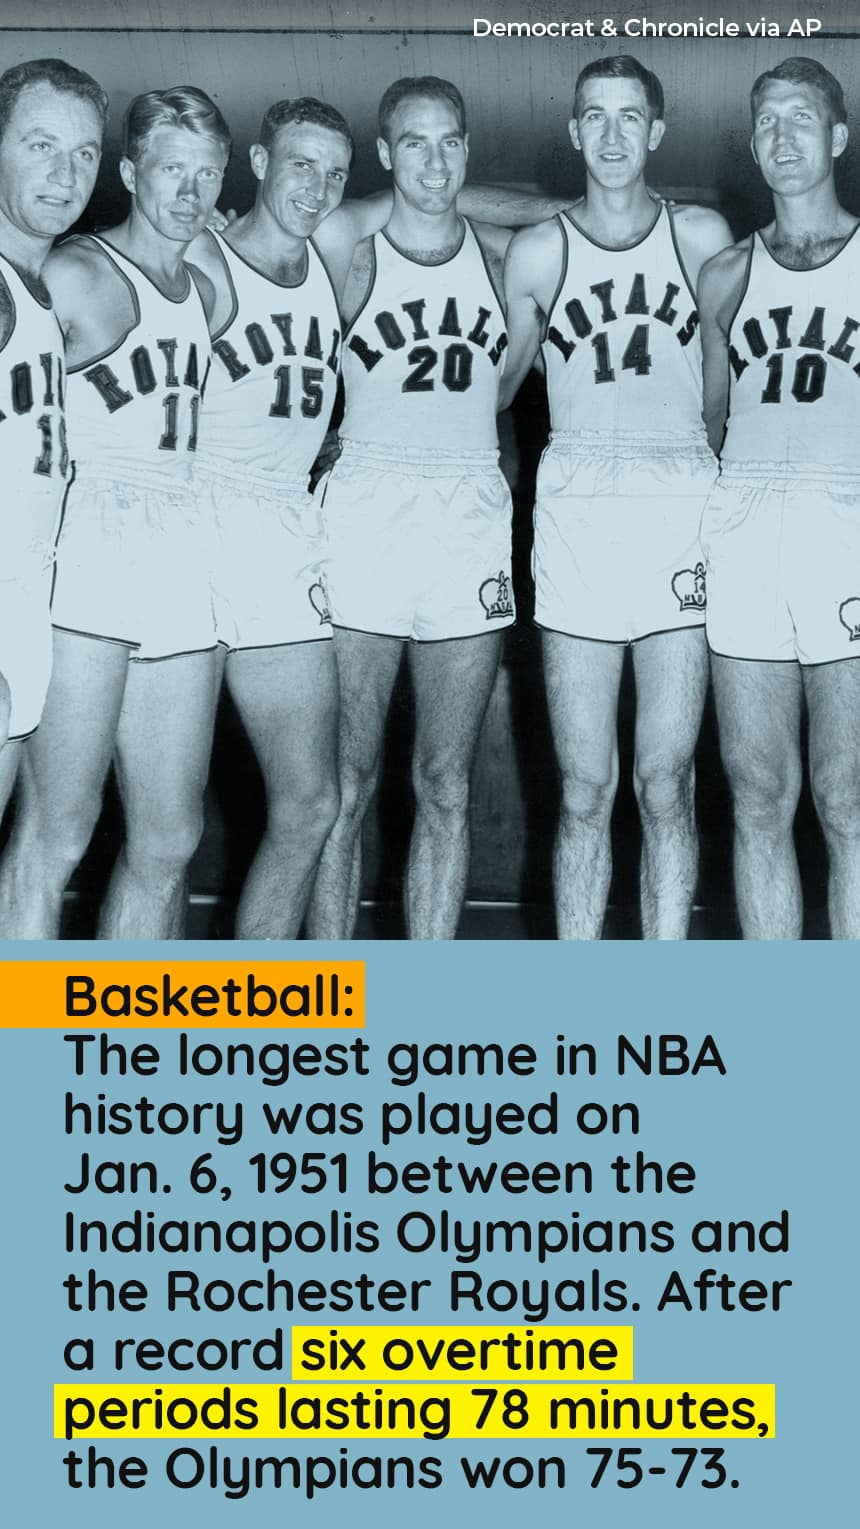 Basketball: The longest game in NBA history was played on Jan. 6, 1951 between the Indianapolis Olympians and the Rochester Royals. After a record six overtime periods lasting 78 minutes, the Olympians won 75-73.